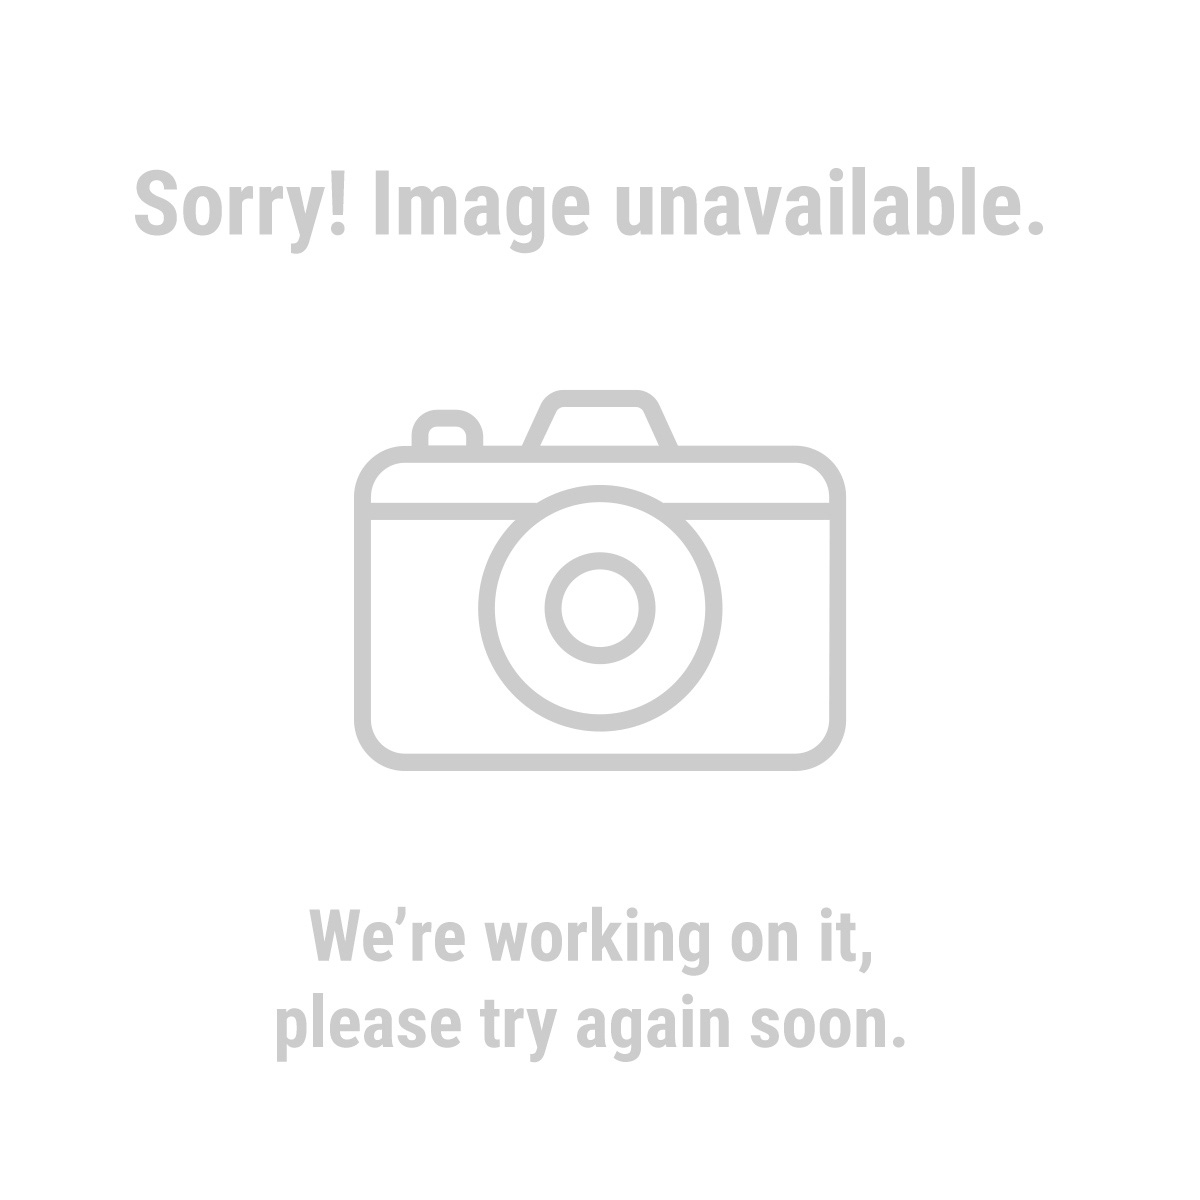 "Pittsburgh 97891 11-1/2"" Super Power Snips - Straight"